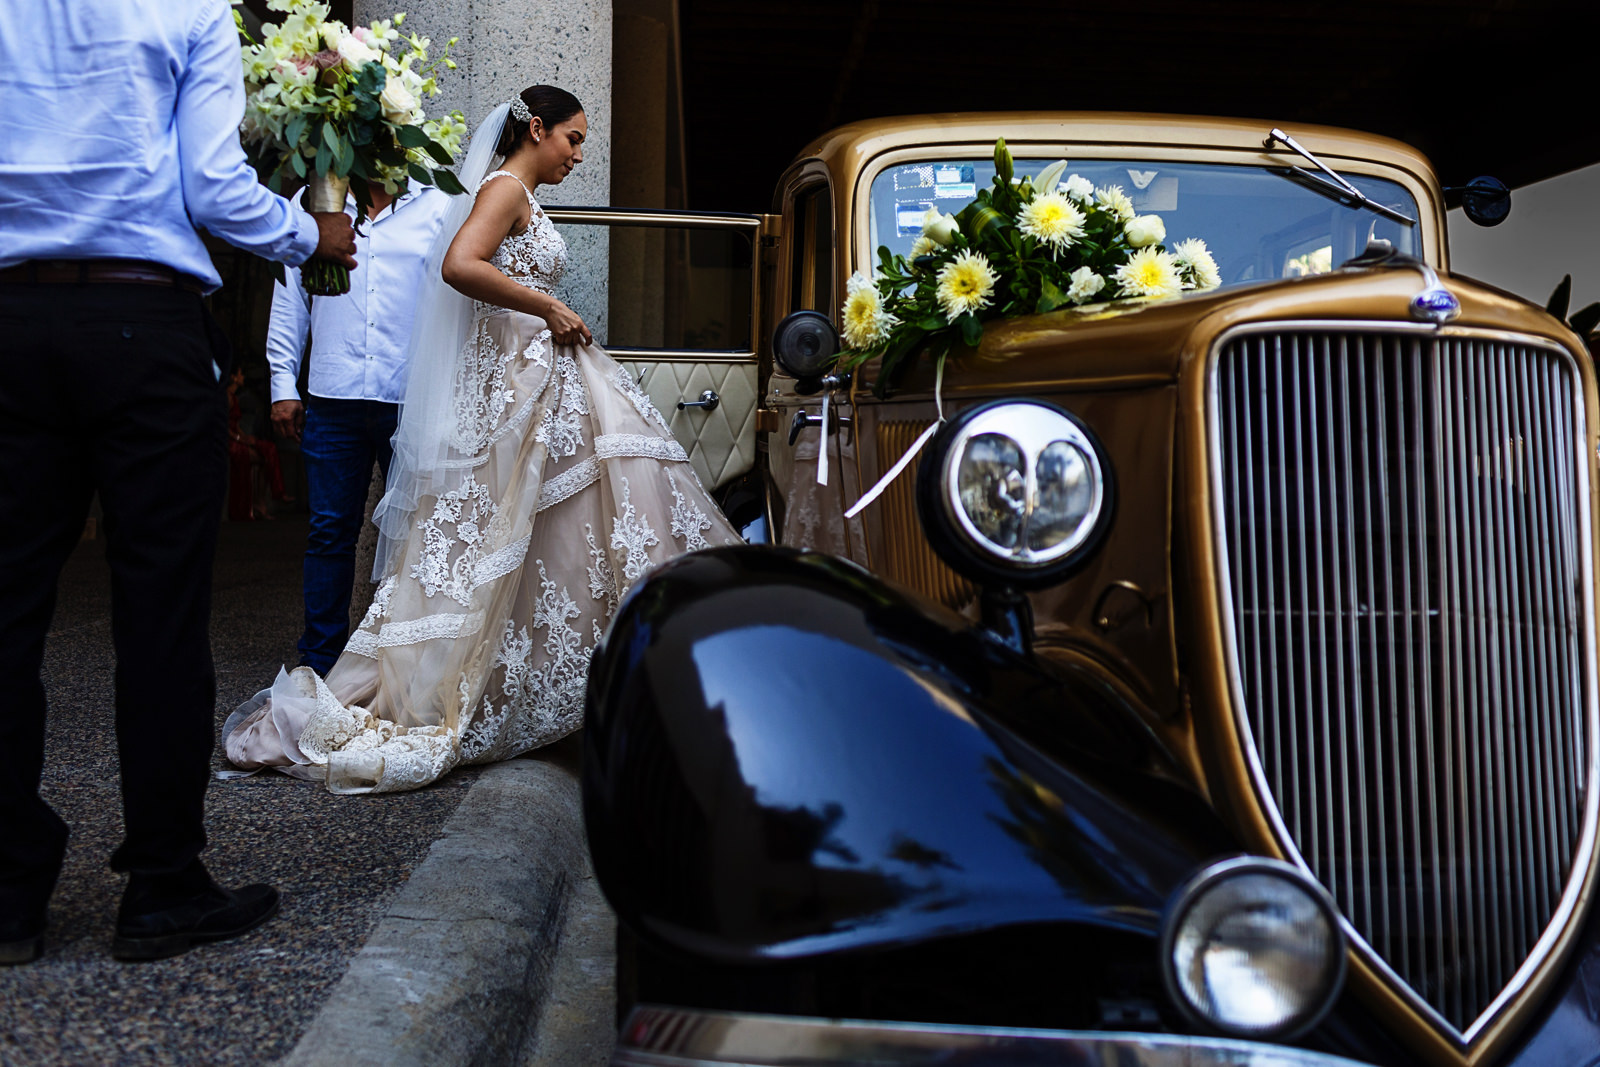 Bride getting into a classic car to go to her catholic wedding ceremony